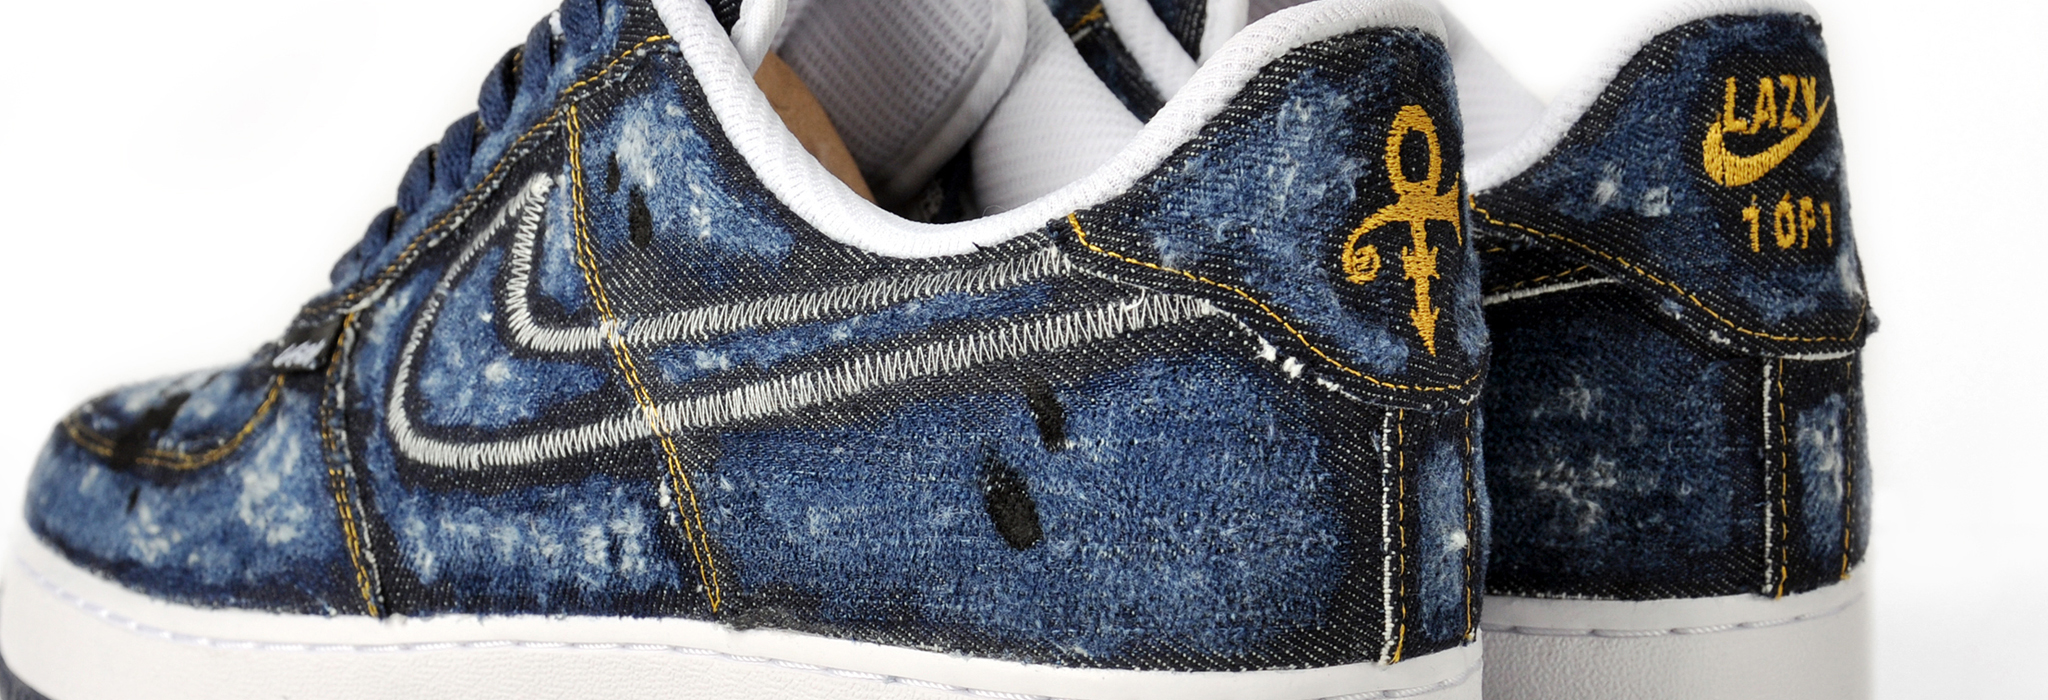 akalazy lazything denim air force 1 custom sneaker